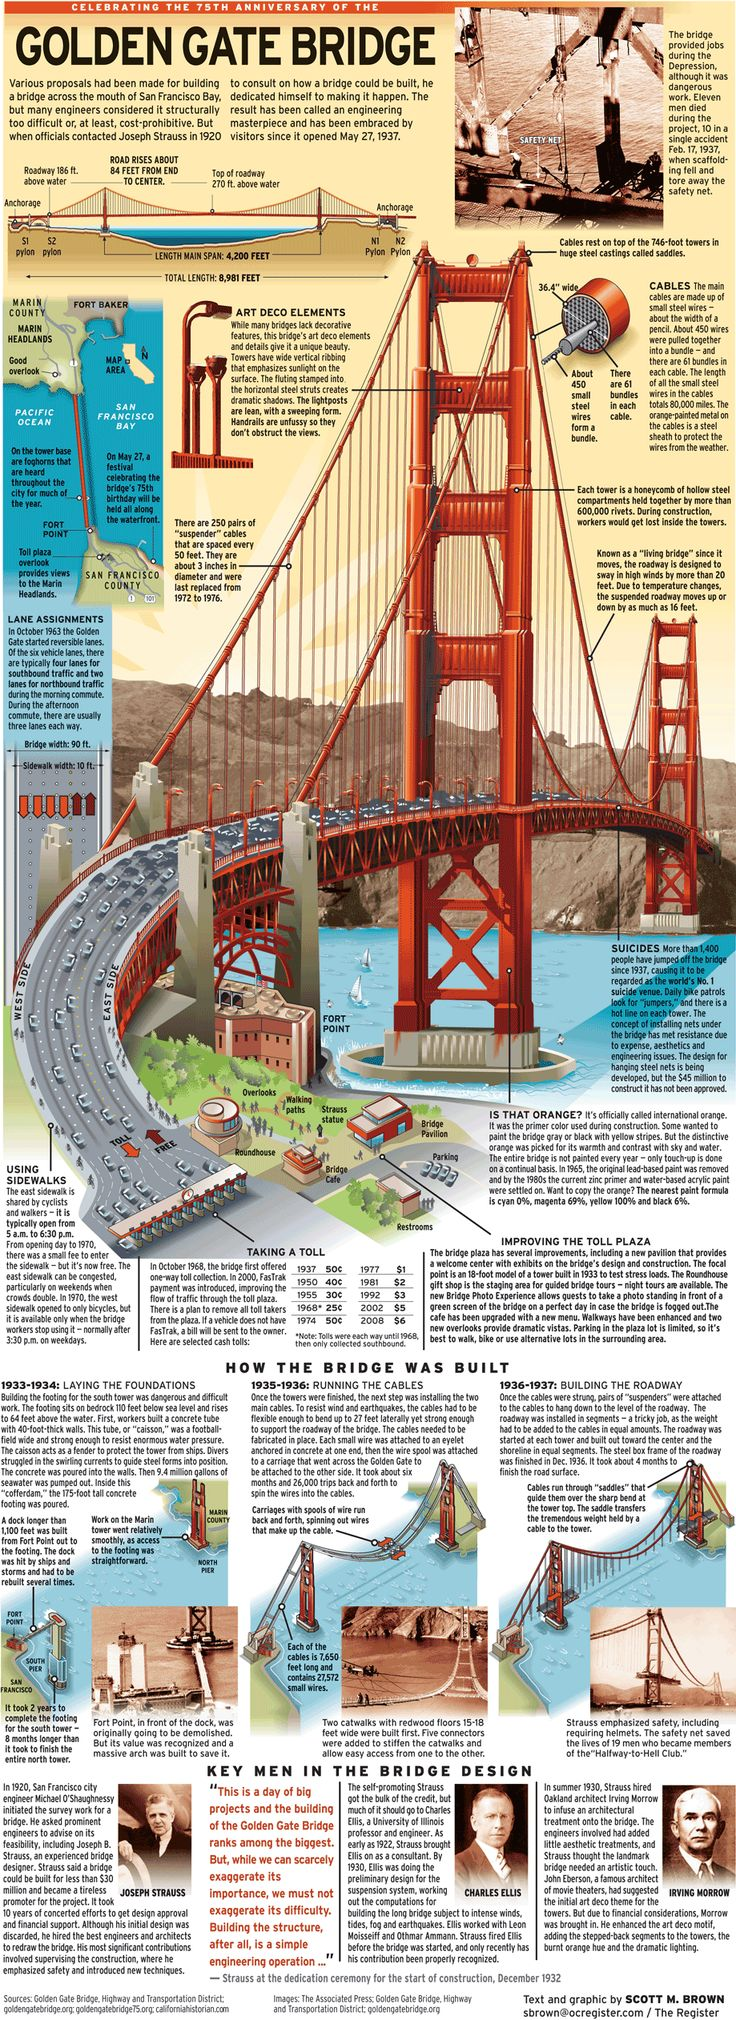 Engineering masterpiece turns 75 | bridge, gate, golden - Golden Gate Bridge - The Orange County Register